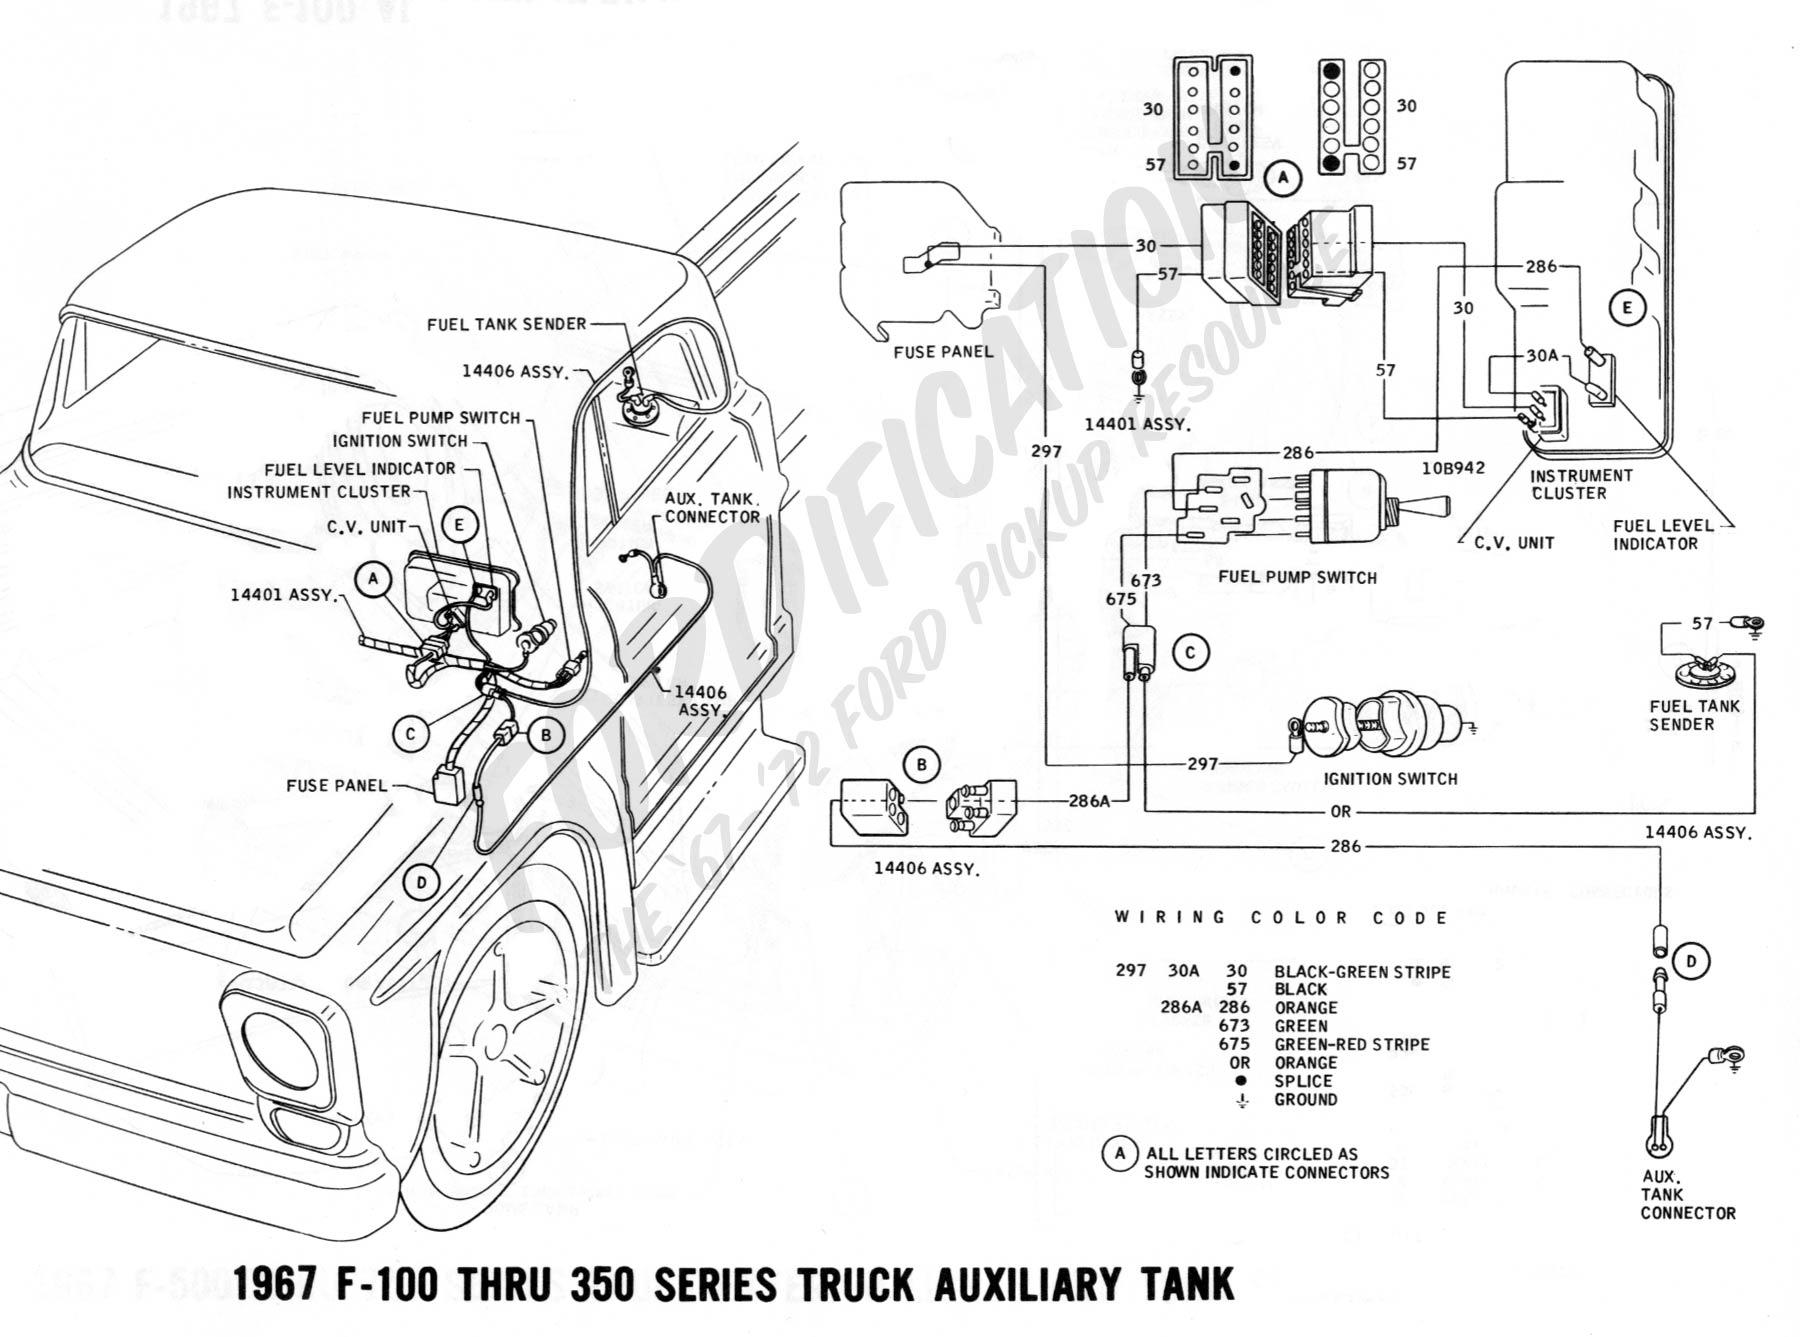 wiring 1967auxtank ford truck technical drawings and schematics section h wiring Ford F700 Fuel Wiring Diagram at couponss.co